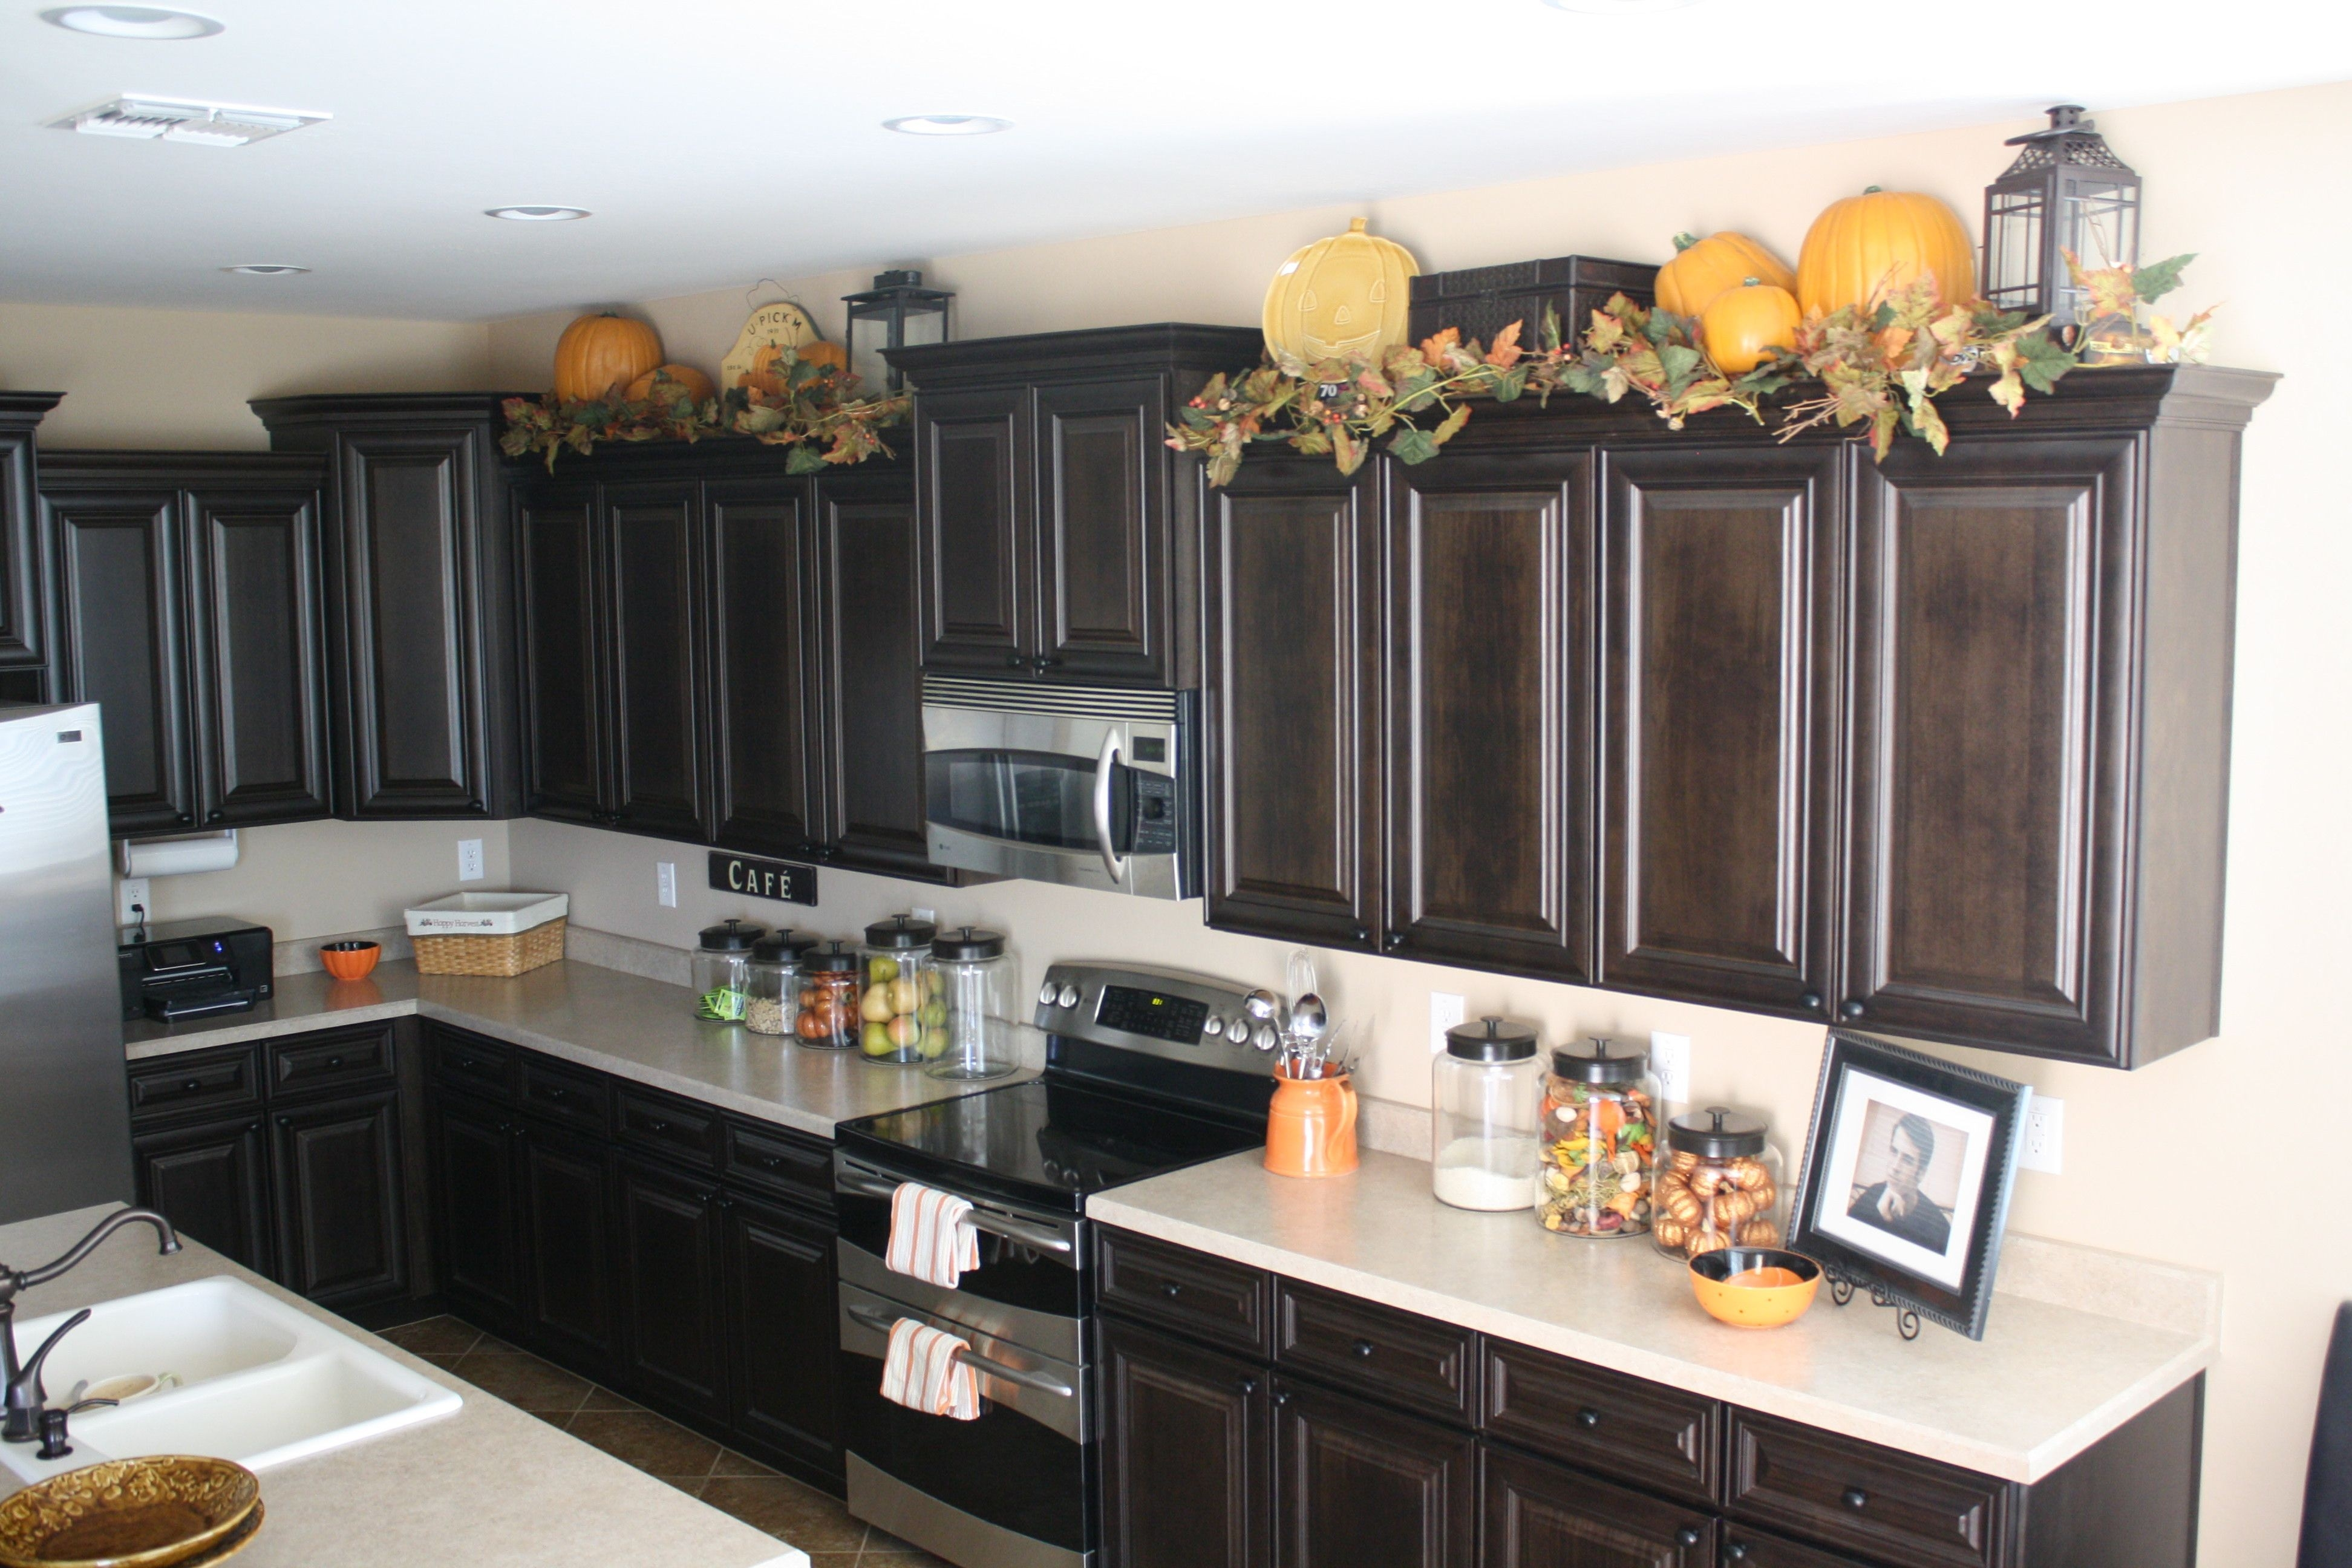 Above Kitchen Cabinet Decor Sightly Lanterns On Top Of Opnodes